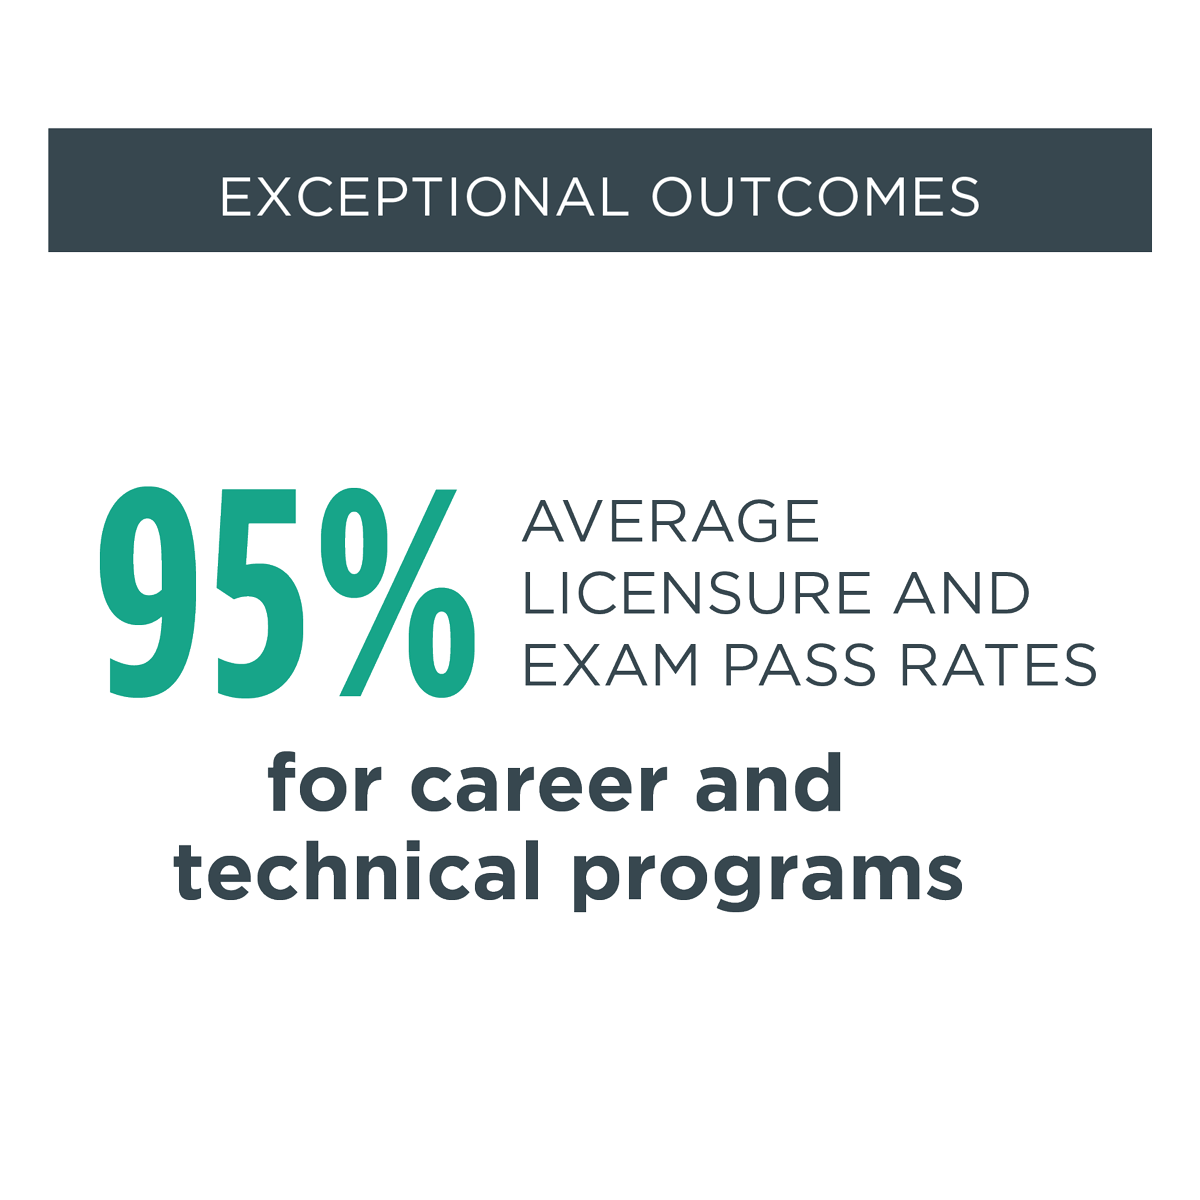 exceptional outcomes - 95% Average licensure and exam pass rates for career and technical programs